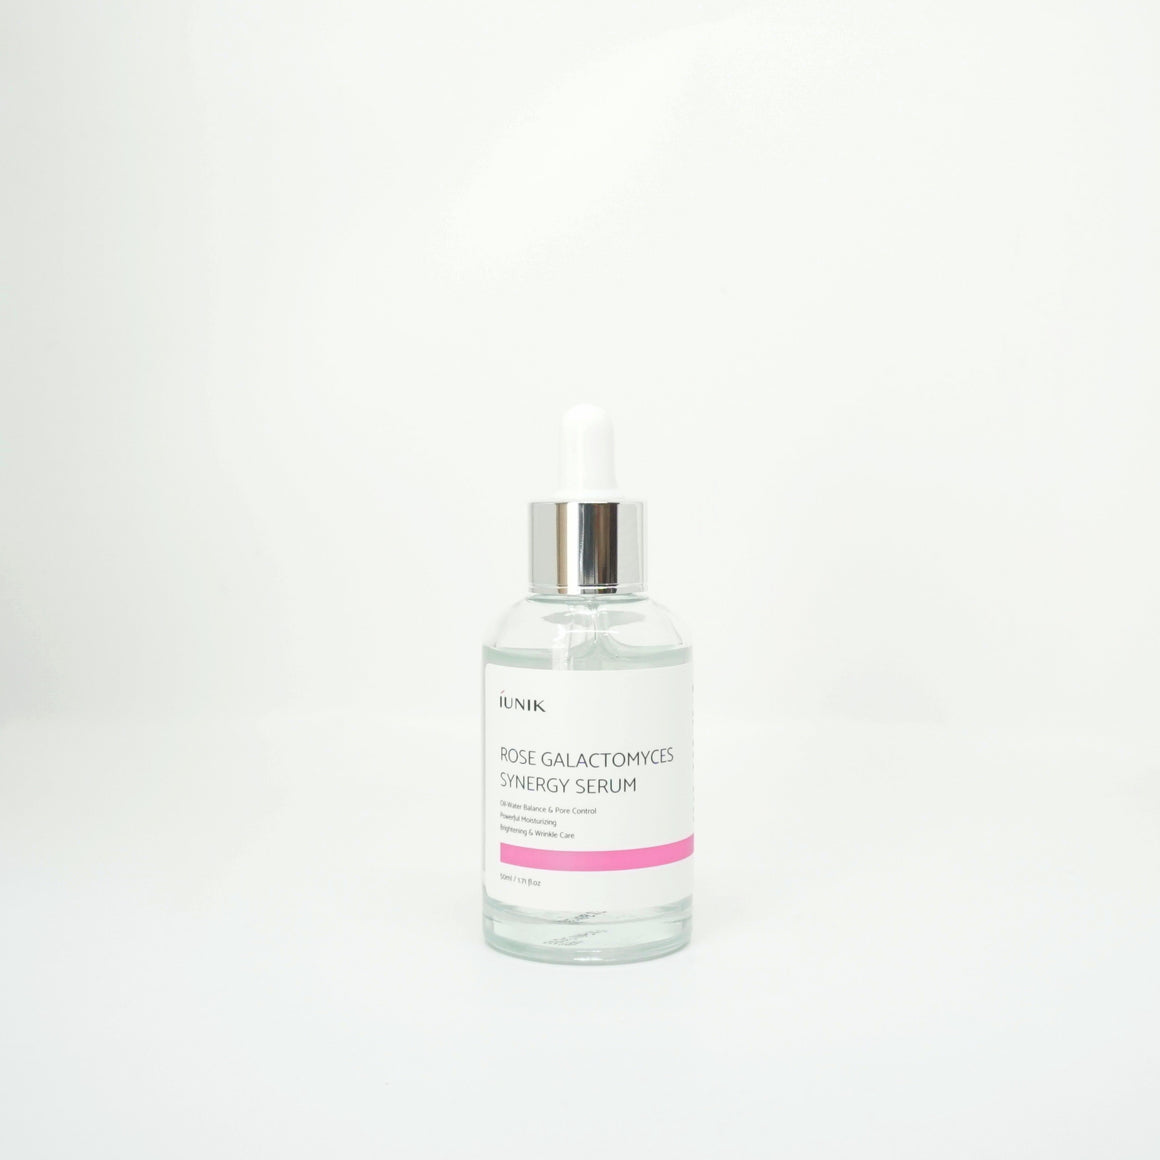 iUNIK Rose Galactomyces Synergy Serum